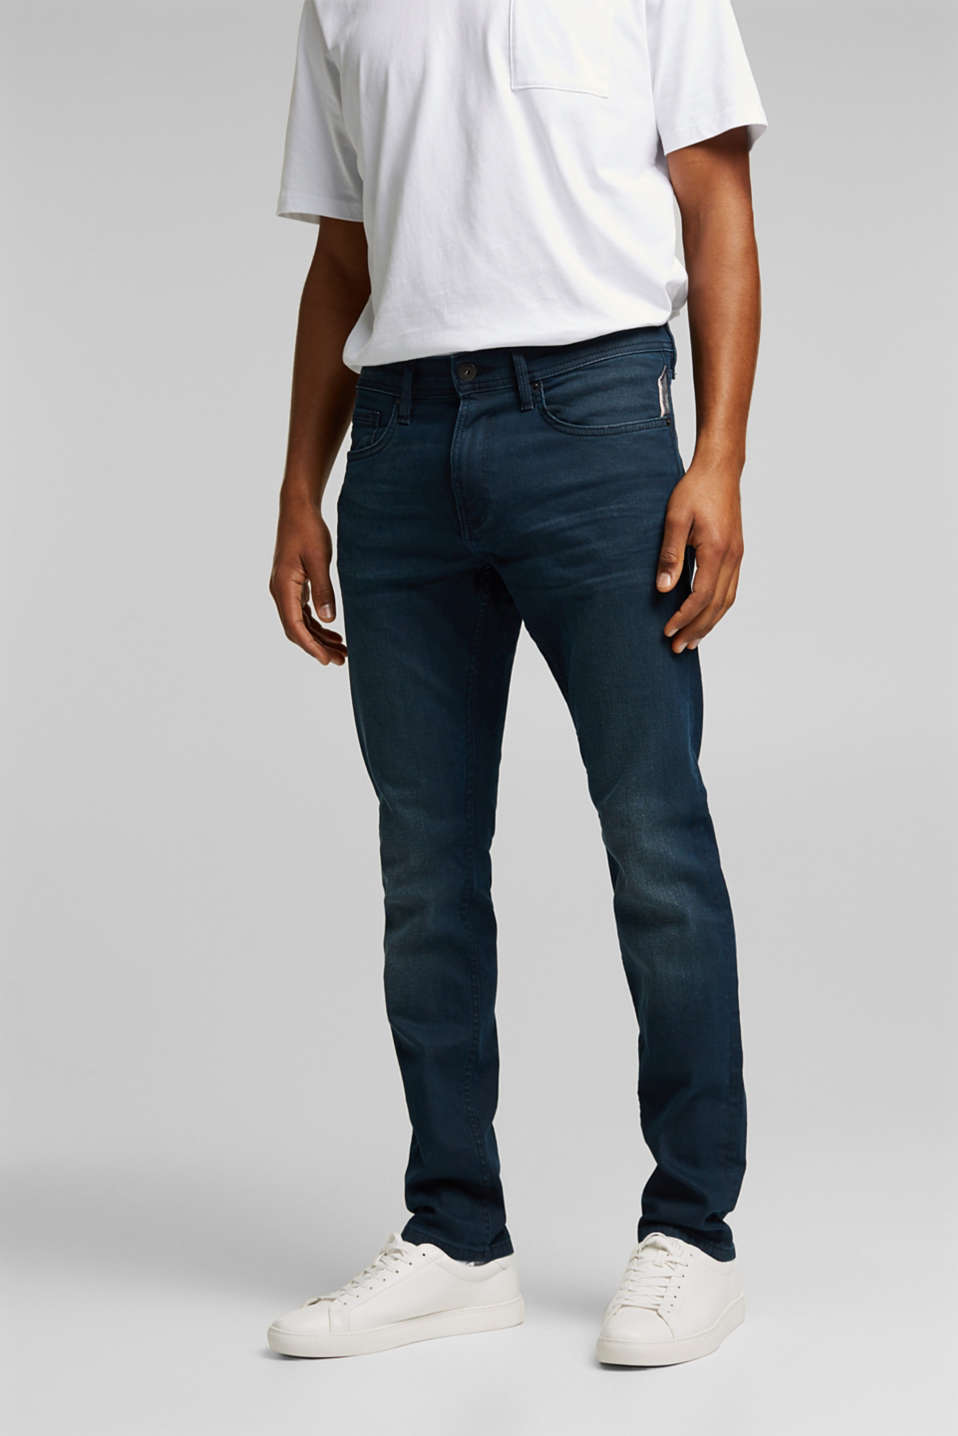 edc - Organic Cotton-Jeans mit Stretch